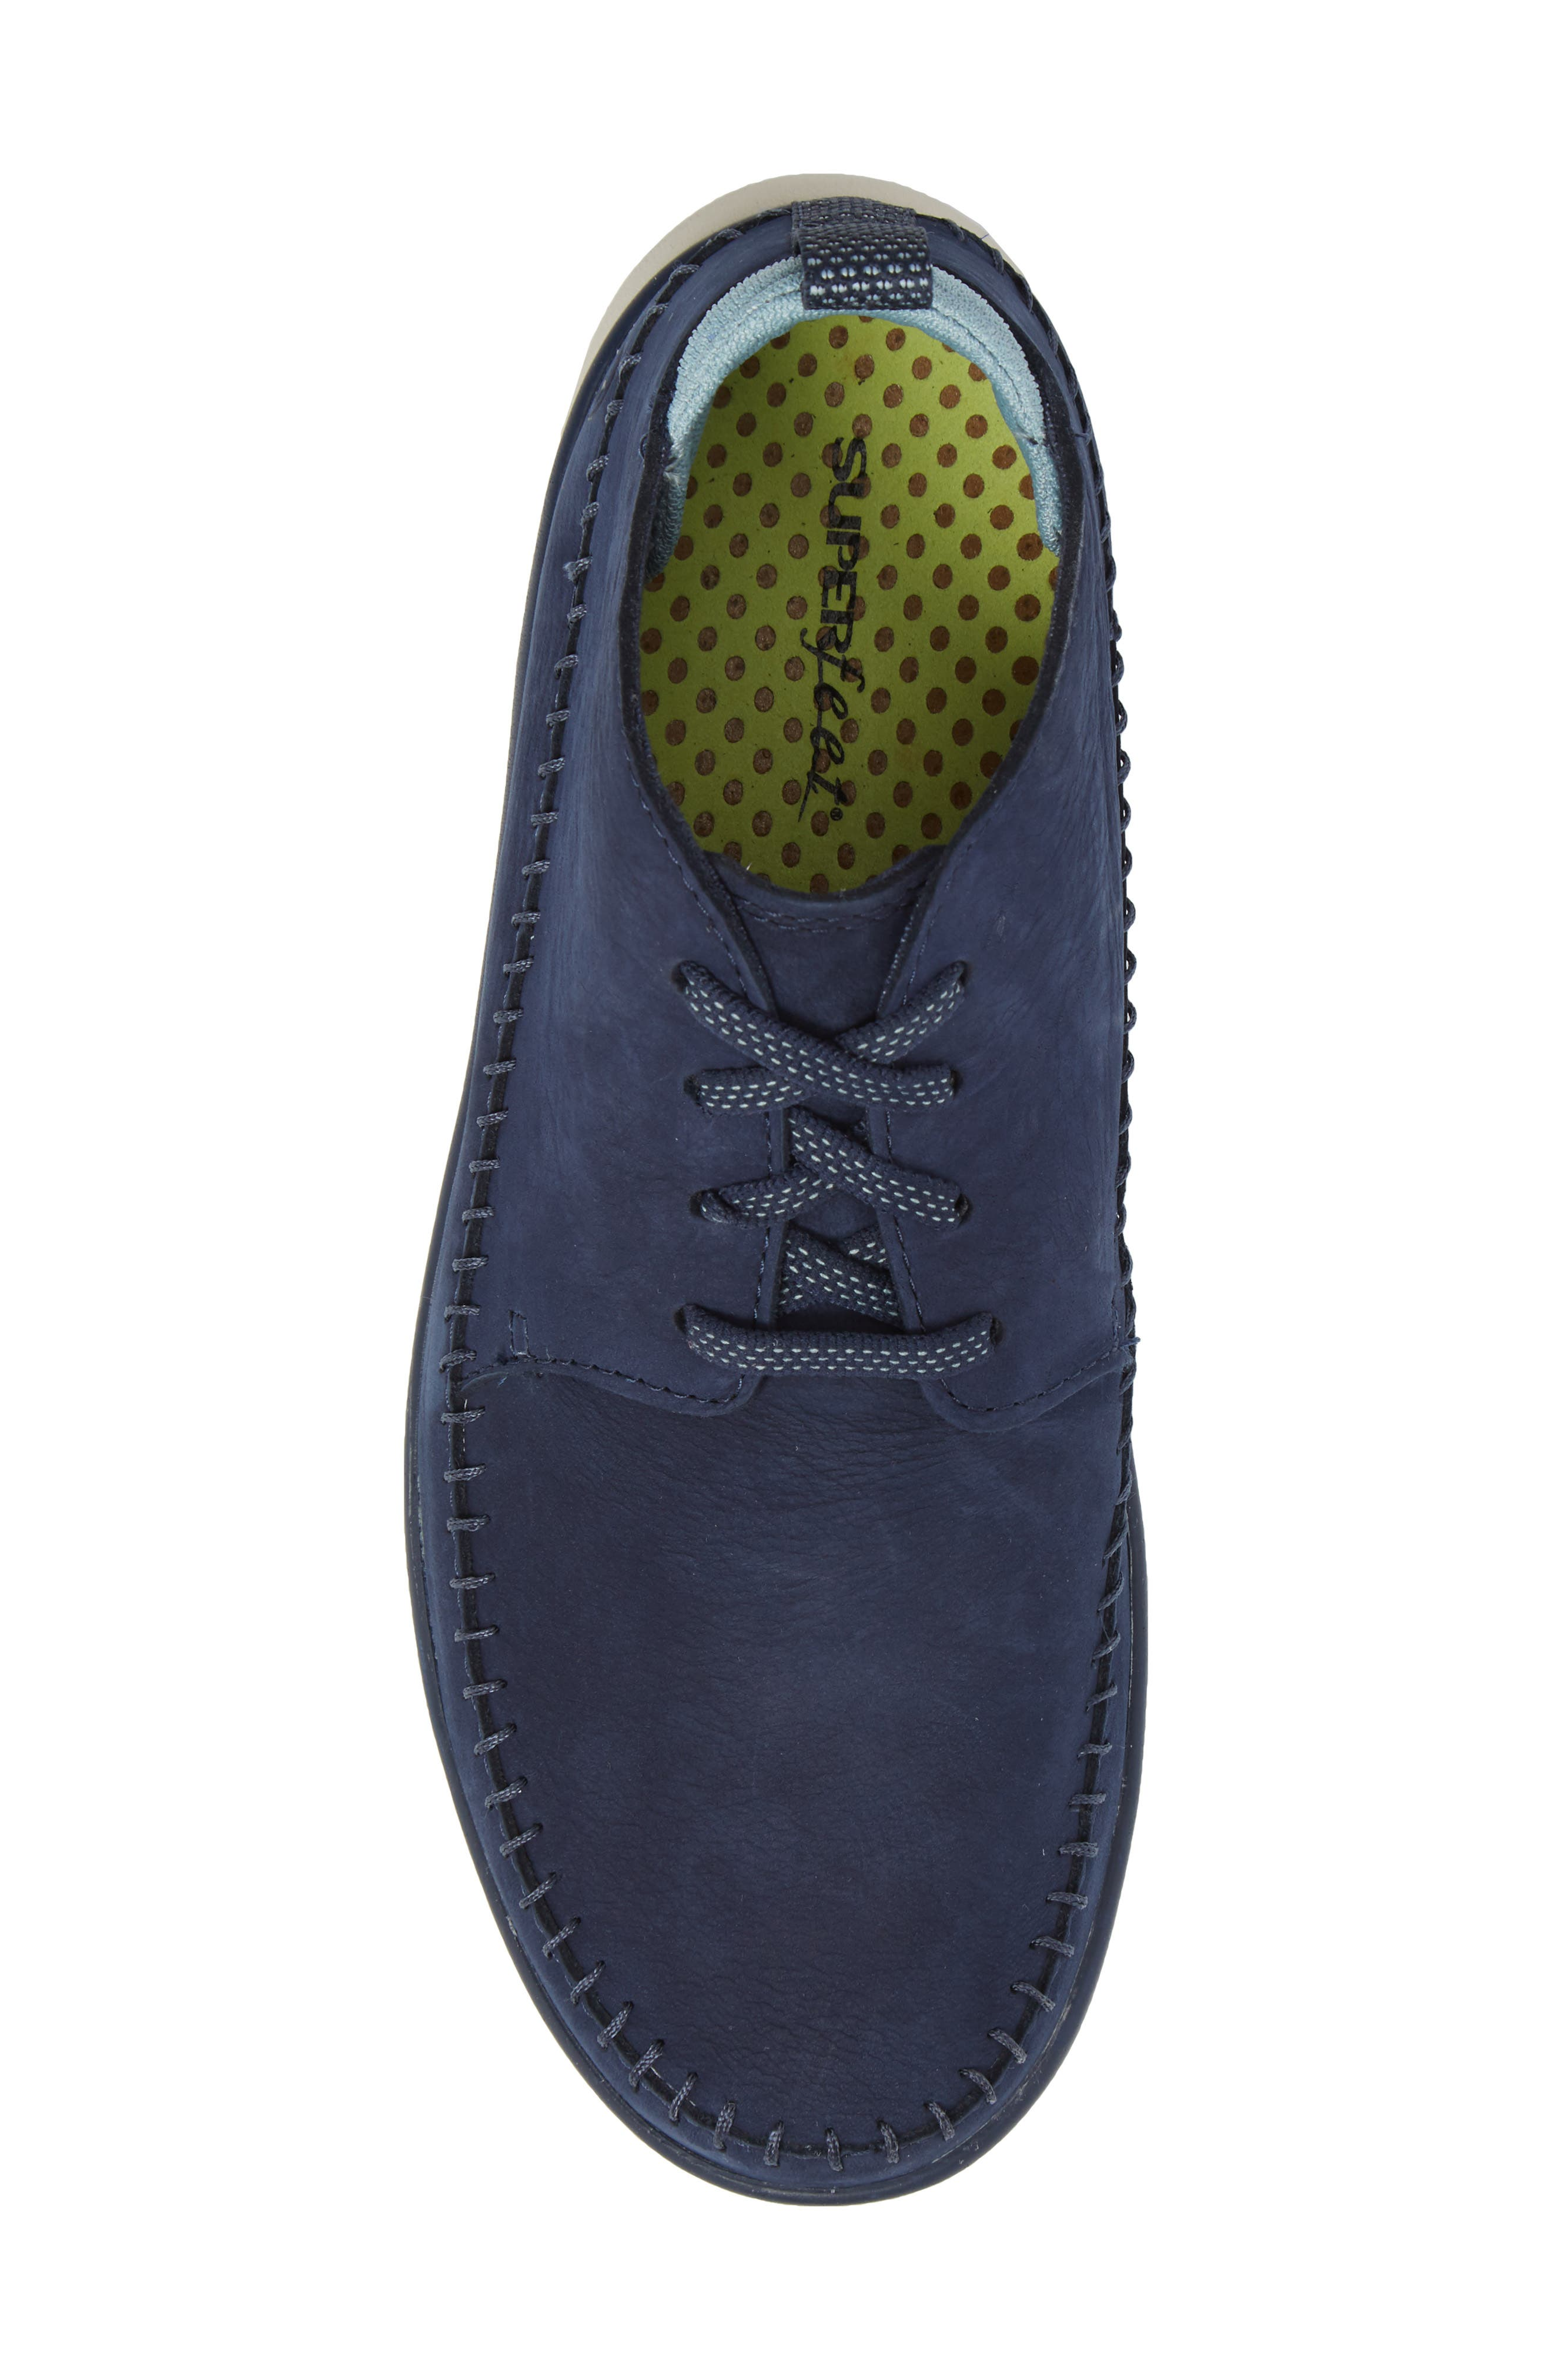 Olympia Lace-Up Sneaker,                             Alternate thumbnail 5, color,                             Blue Nubuck